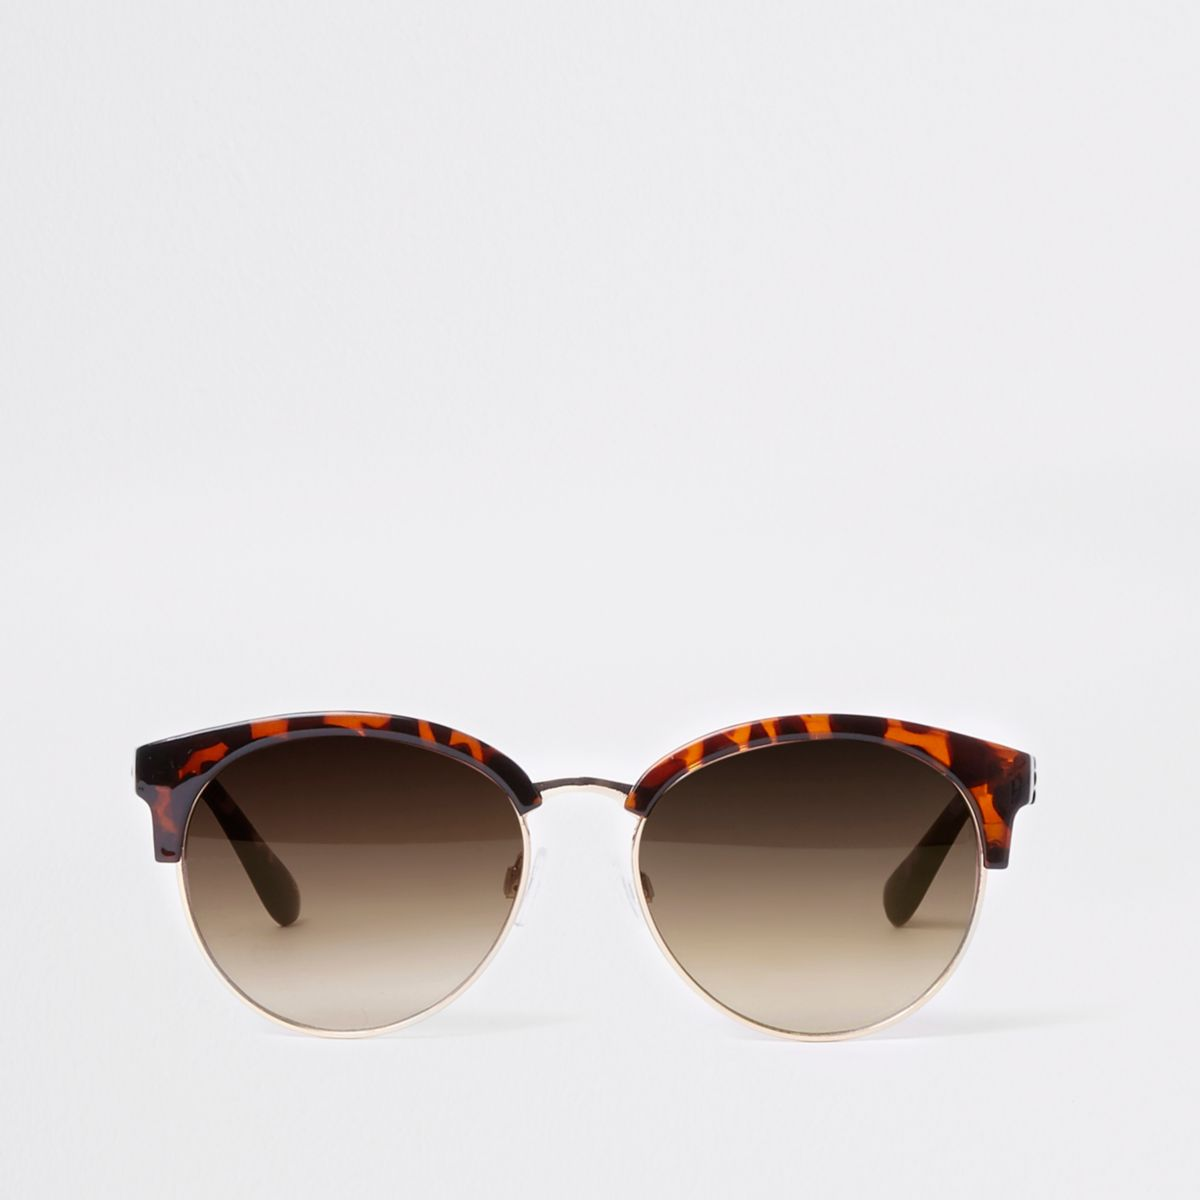 Brown tortoiseshell frame sunglasses